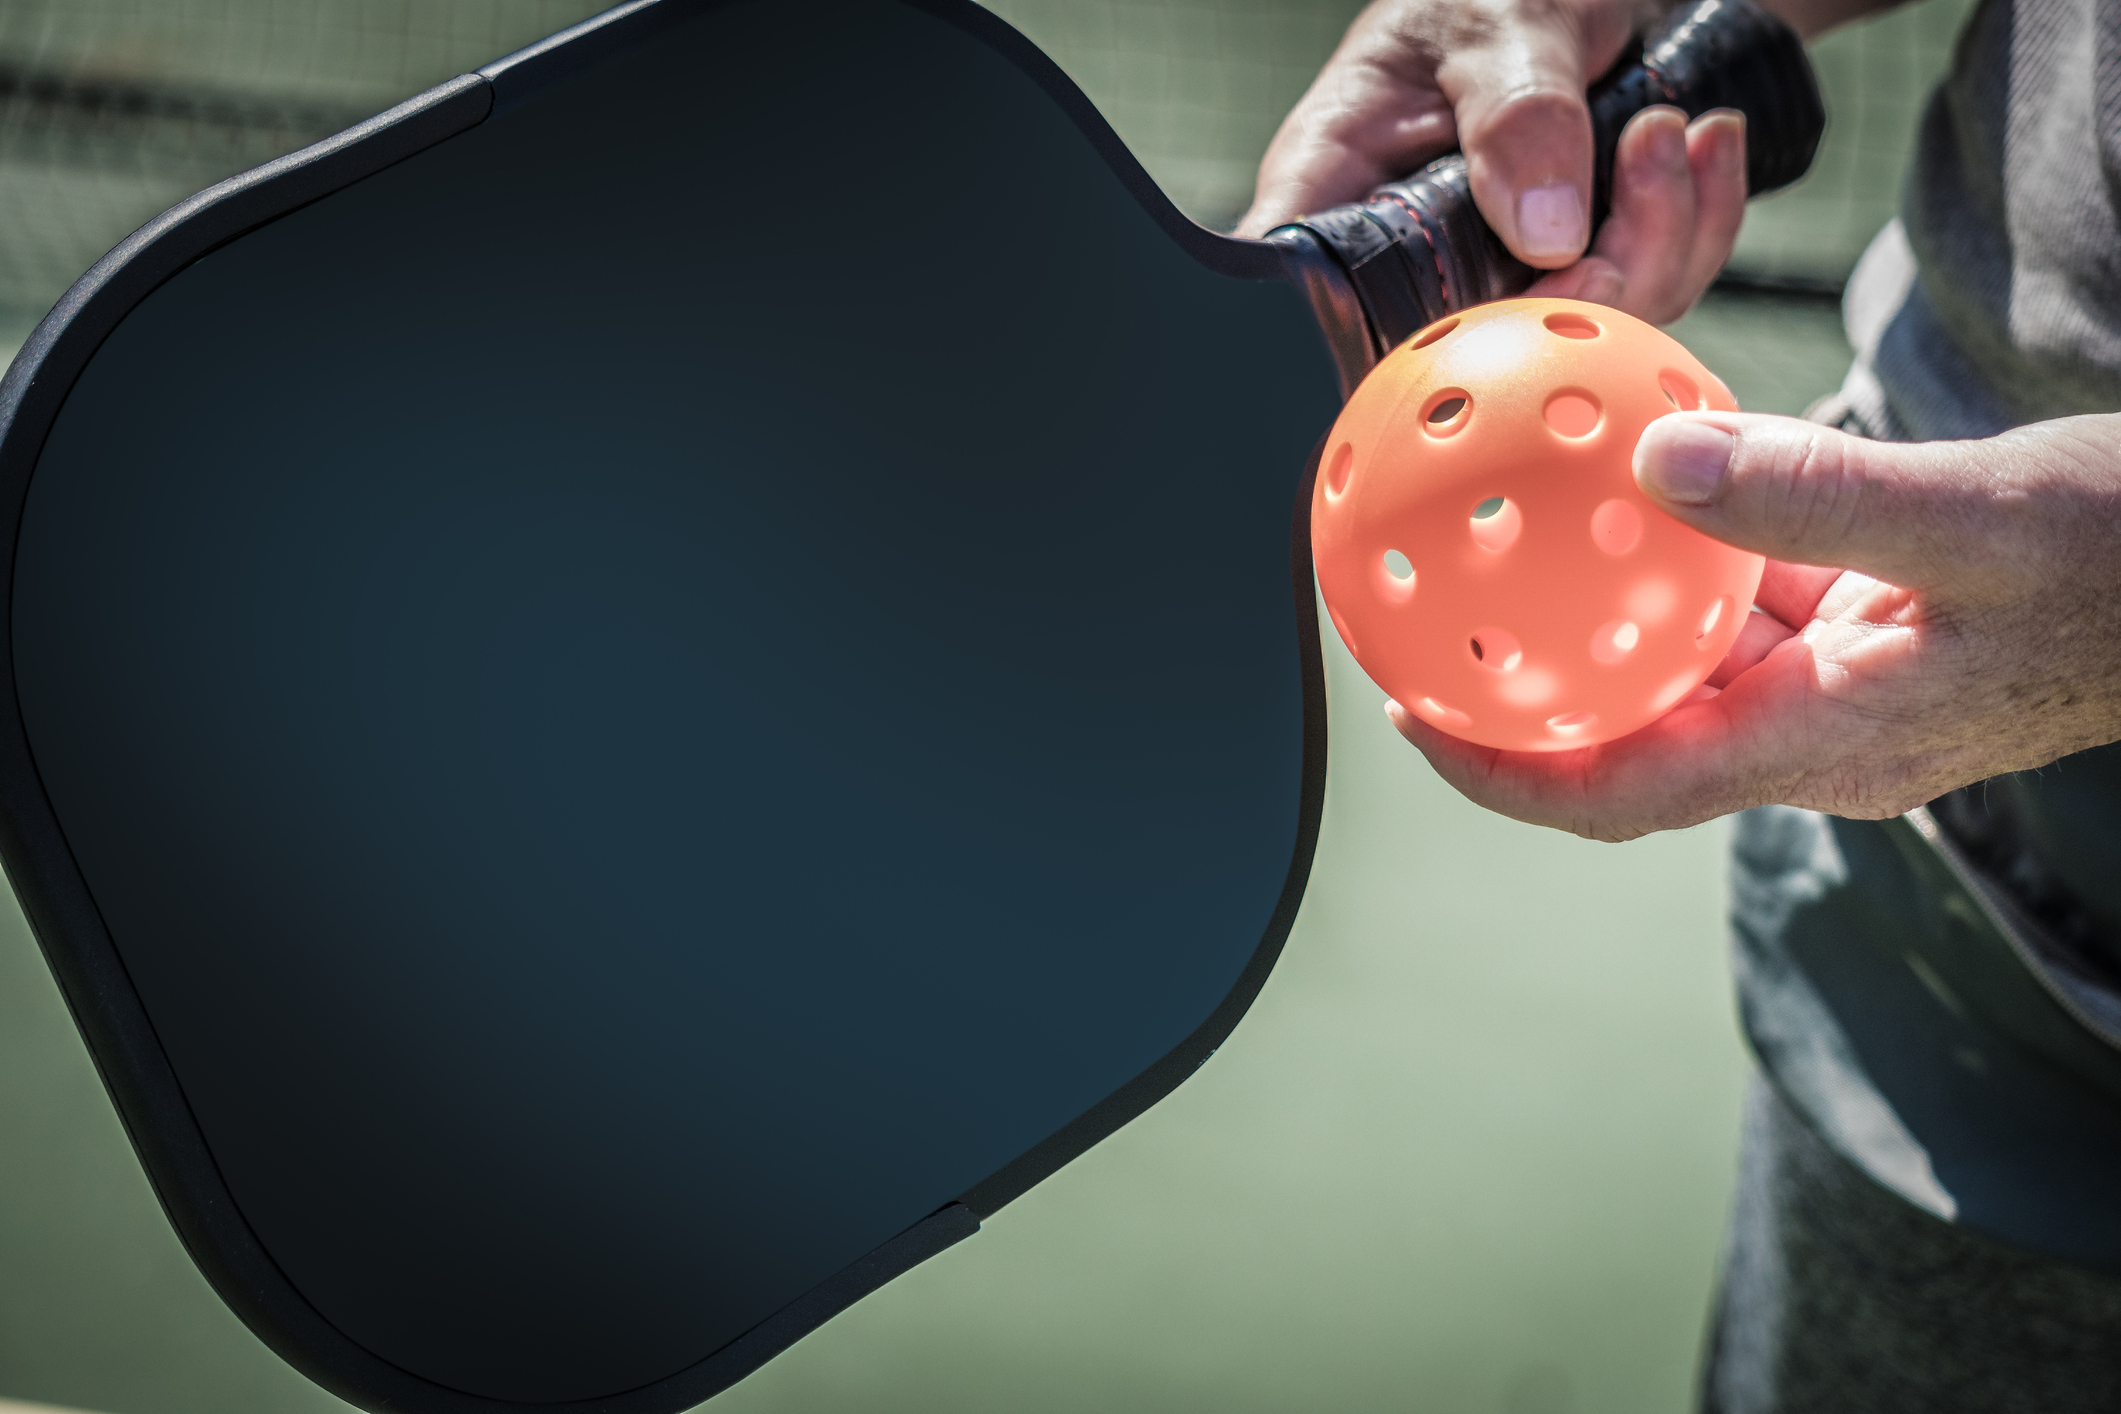 The 3 Rules to a Legal Pickleball Serve and Forms to use